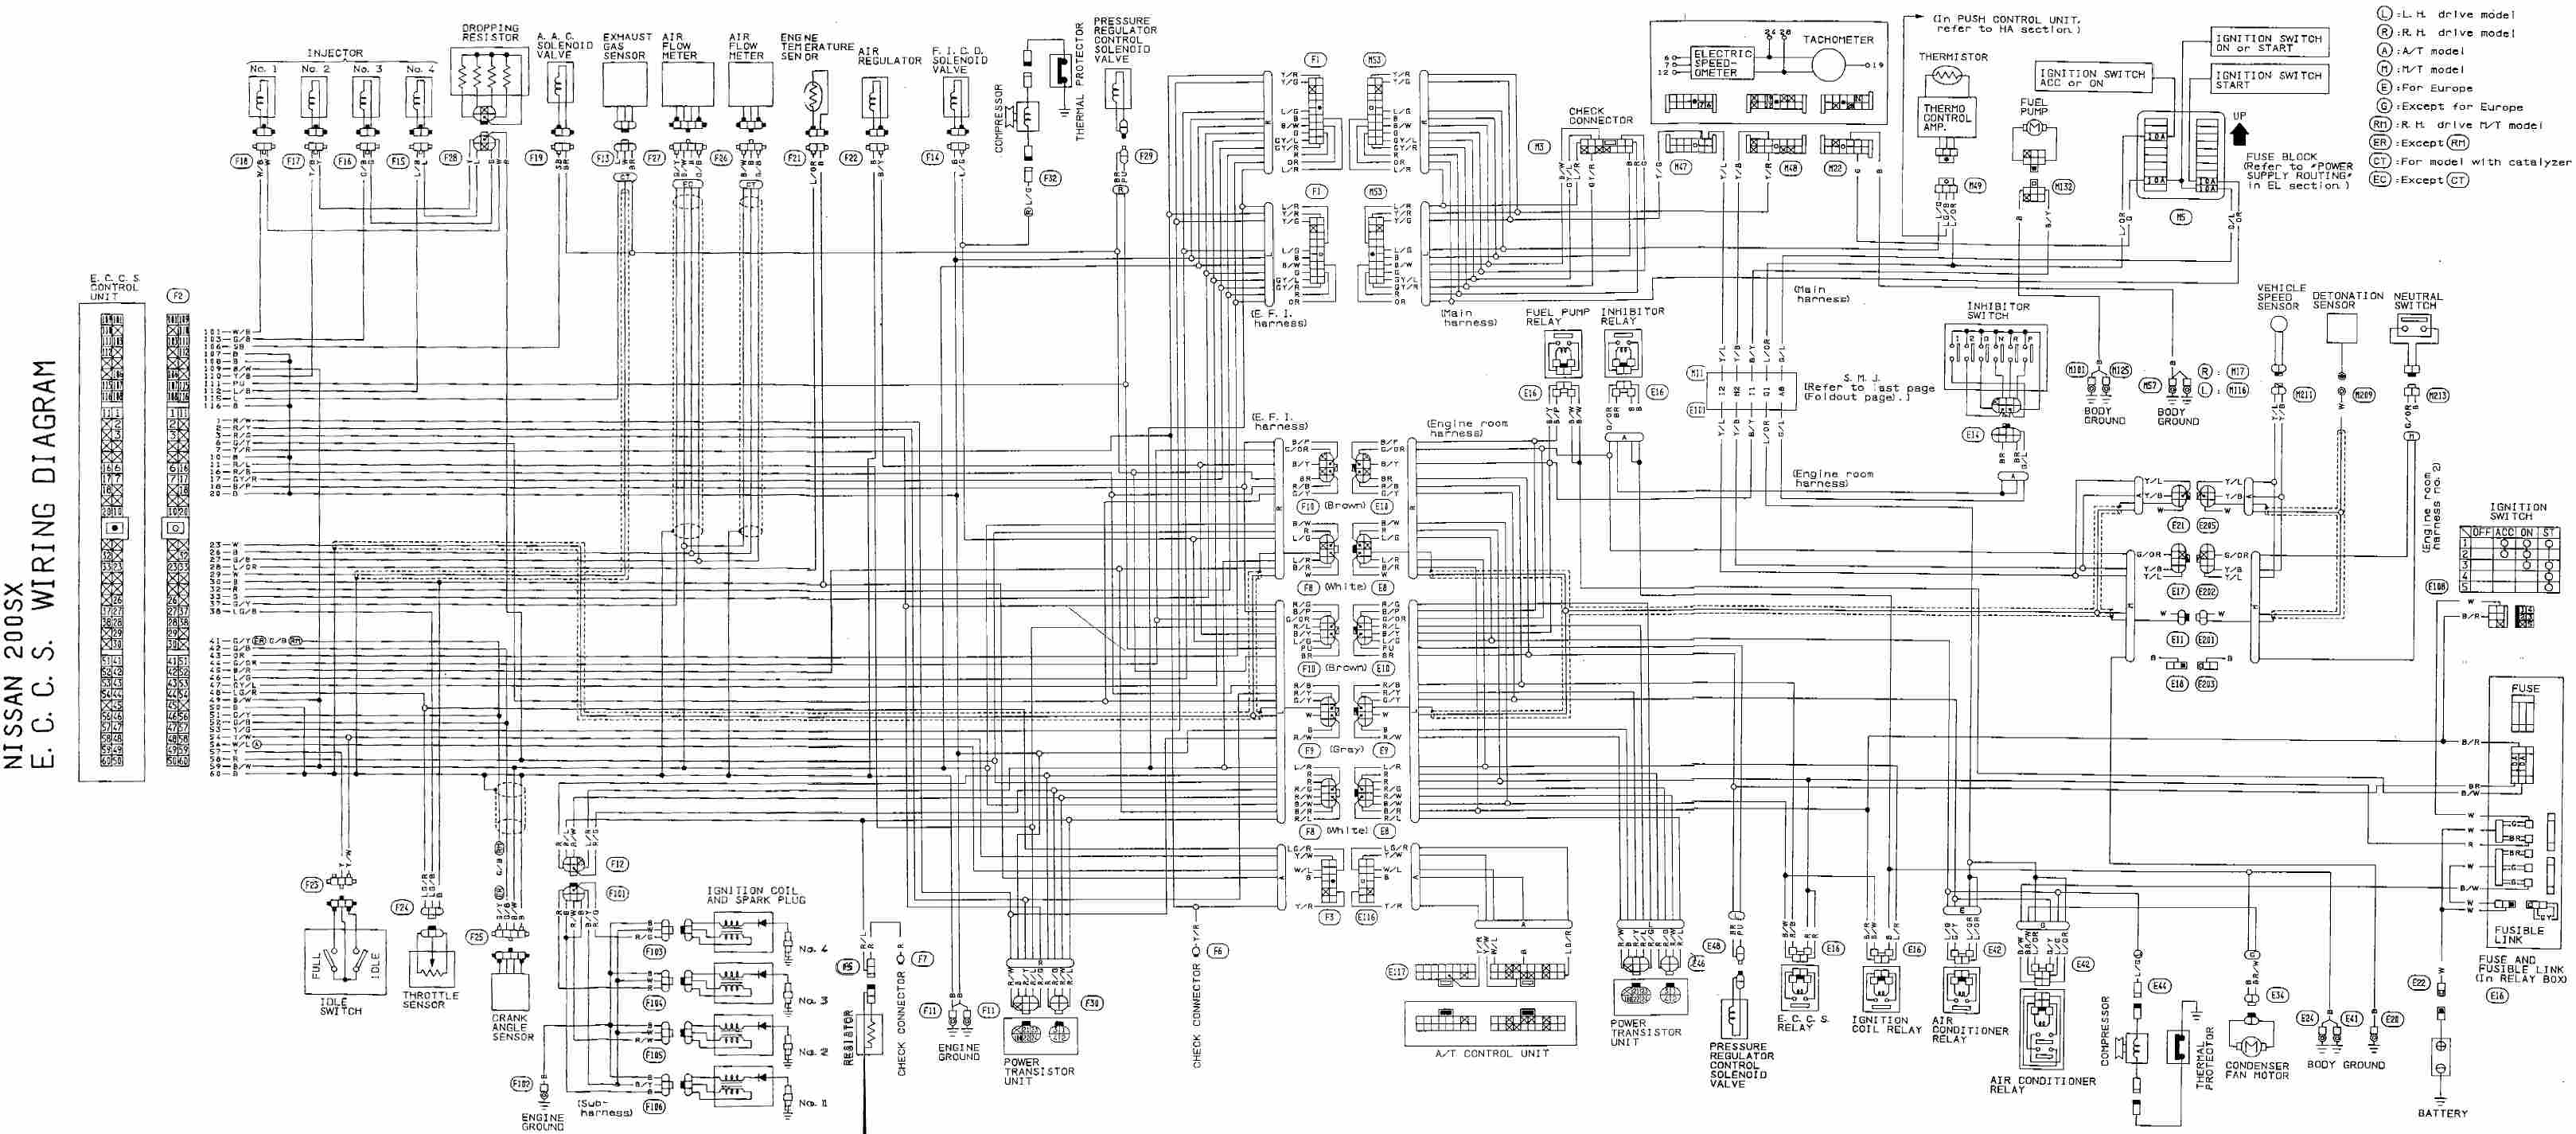 complete eccs wiring diagram of nissan 200x?t\=1508500919 300zx wiring diagram 300zx power diagram \u2022 wiring diagrams j 5R55E Transmission Wiring Diagram at bayanpartner.co